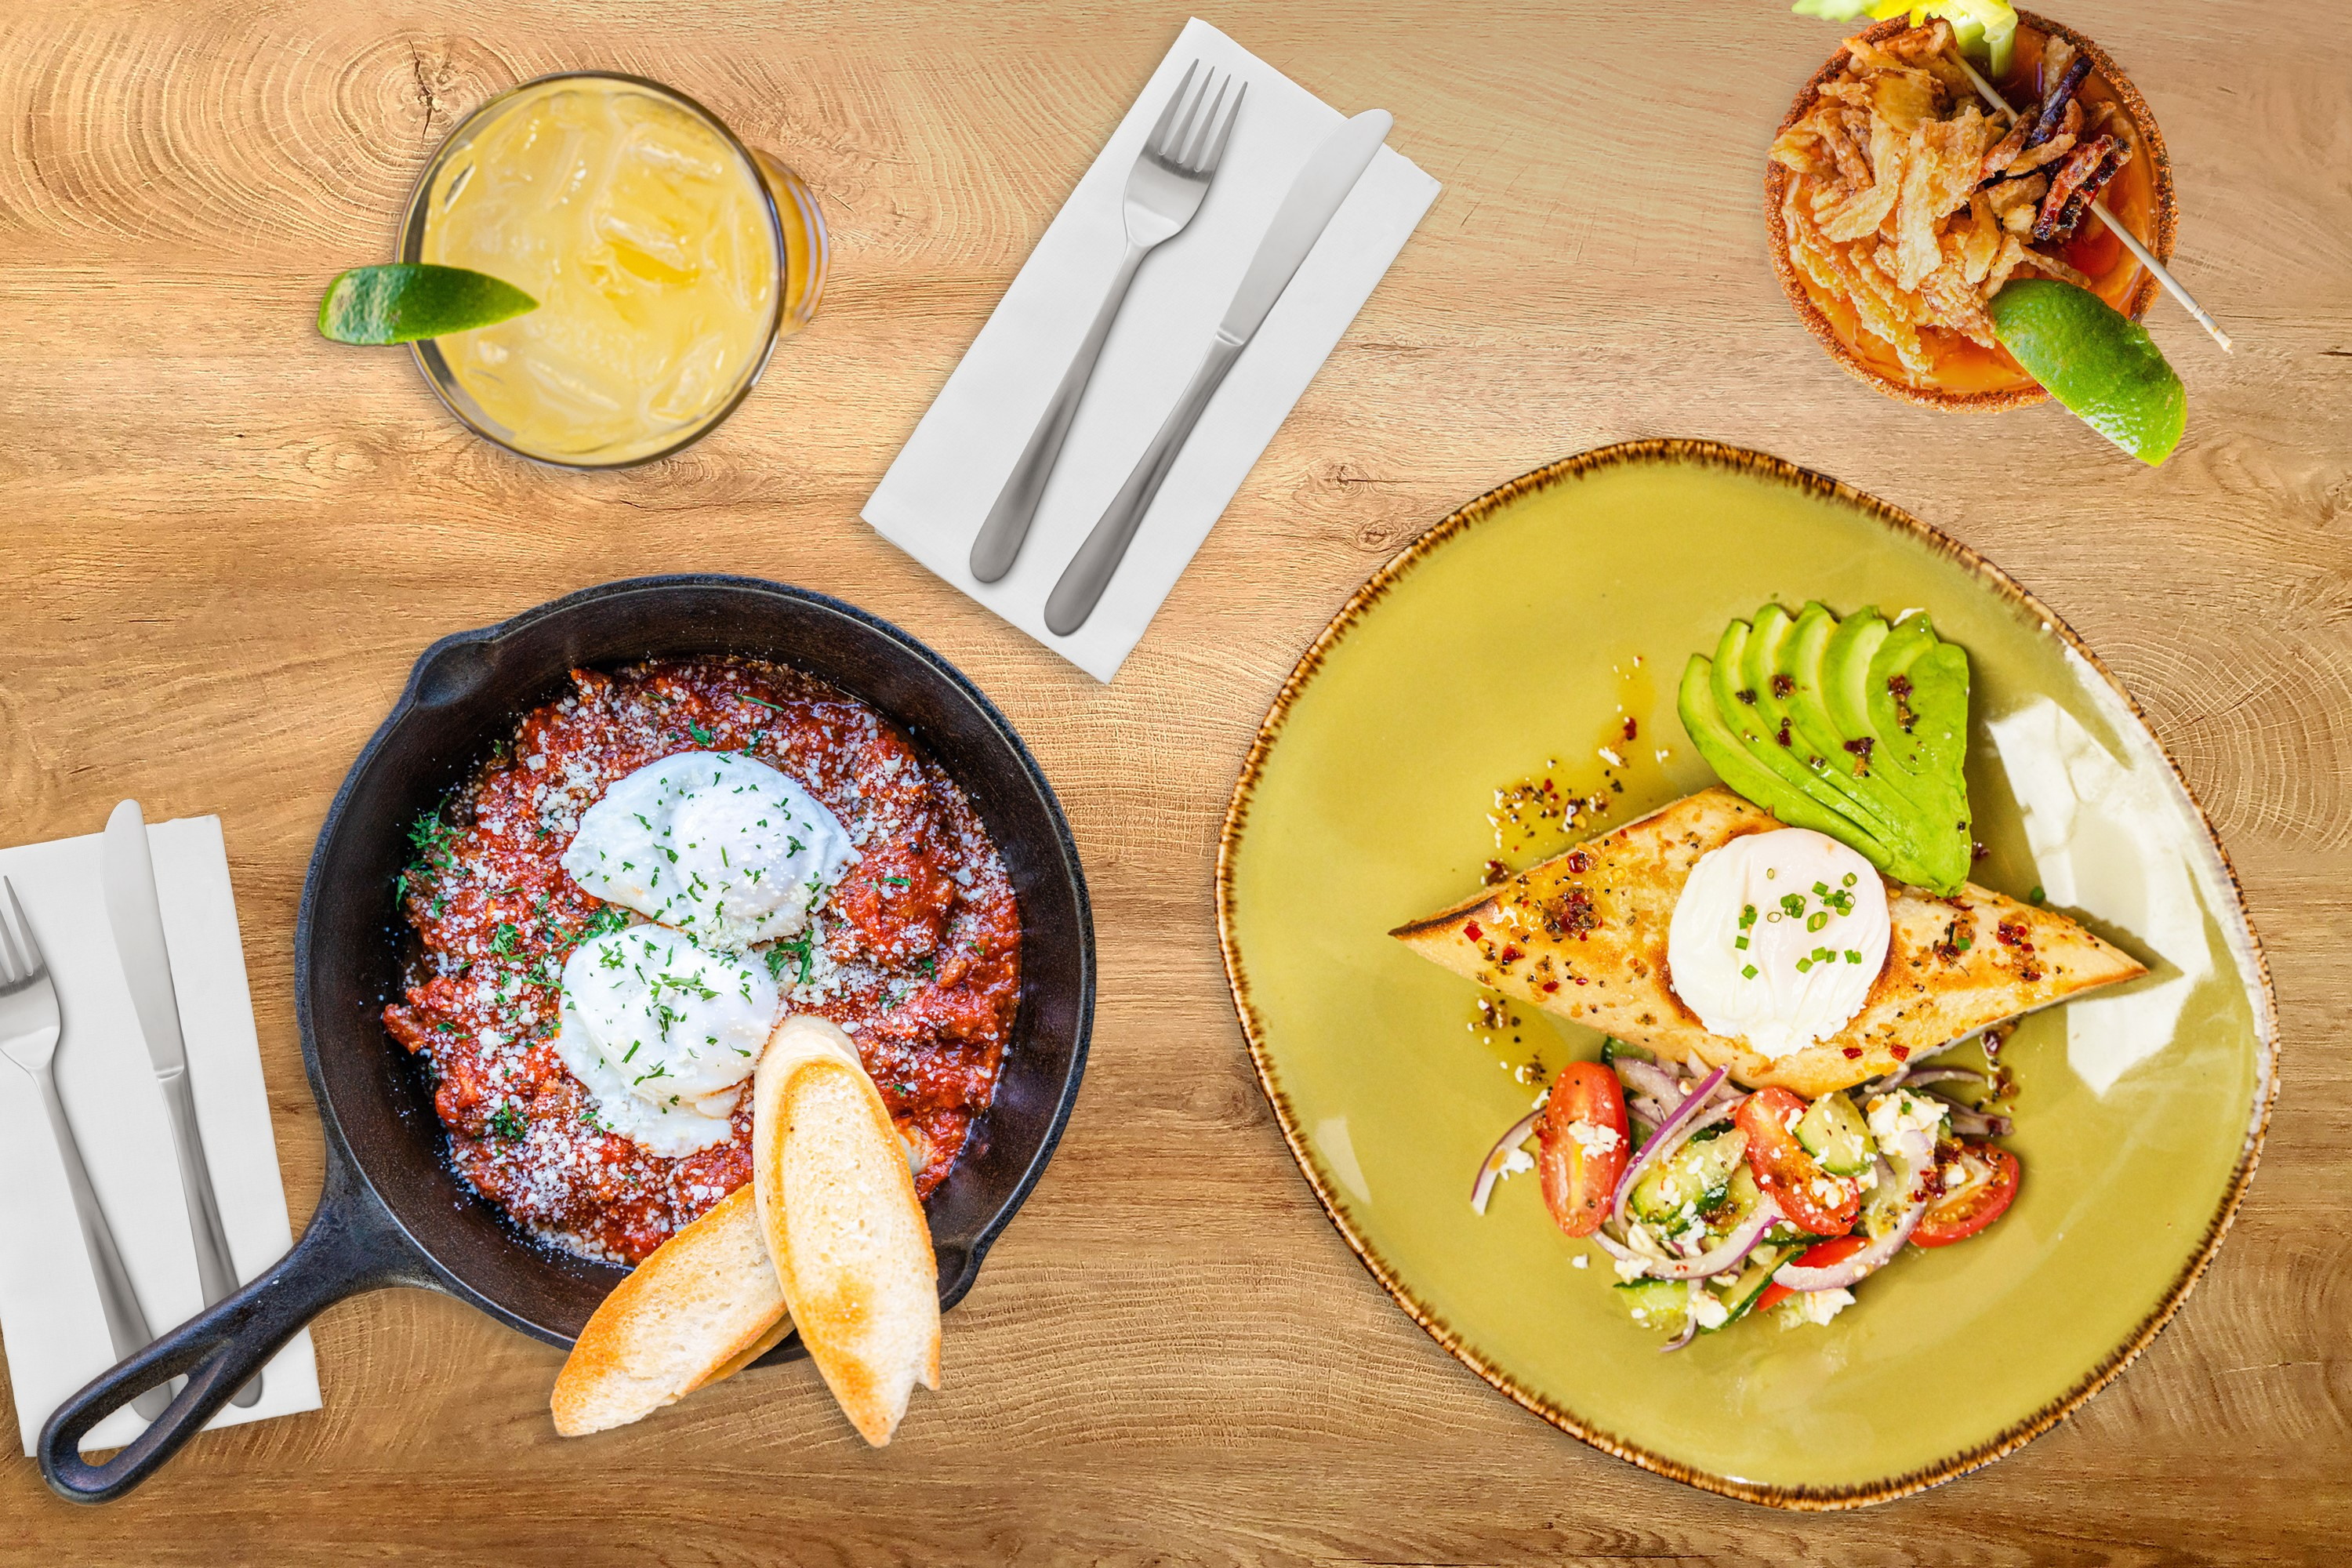 Upgrade Your Weekend With Brunch At Punch Bowl Social! from Punch Bowl Social